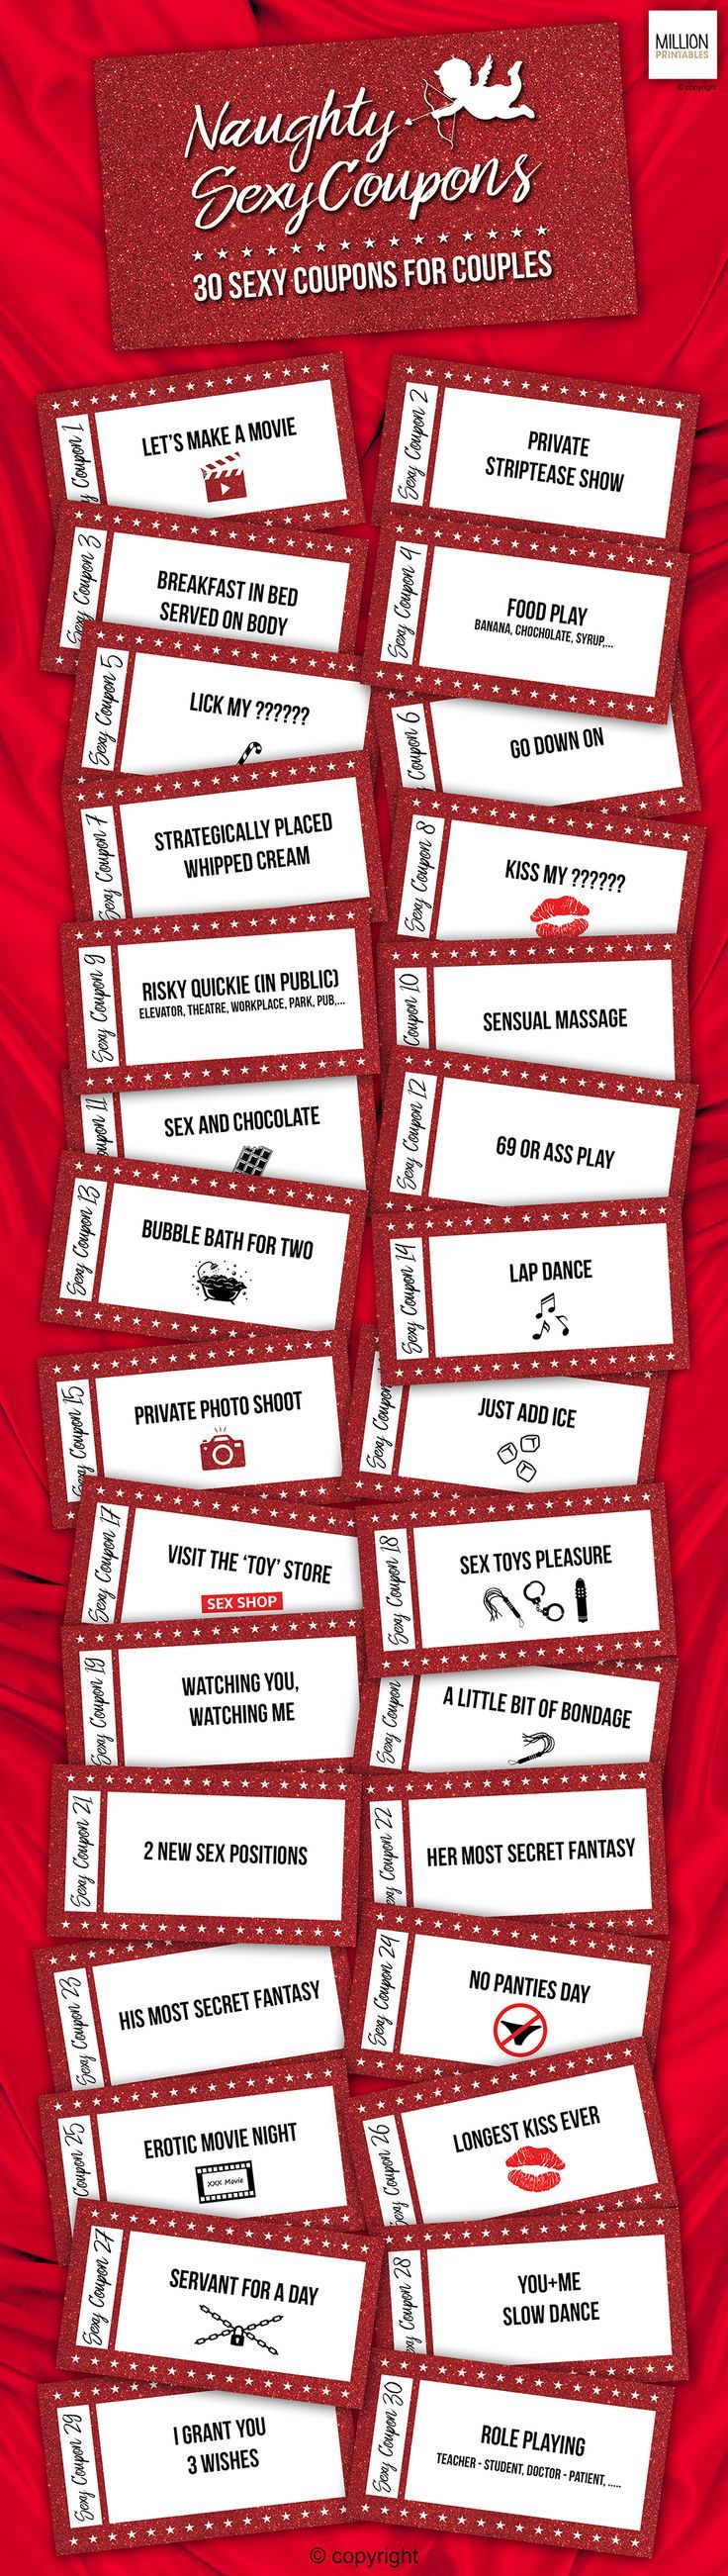 Naughty Coupon Book, Sex Coupons, naughty coupons, gift for couple, erotic  coupons